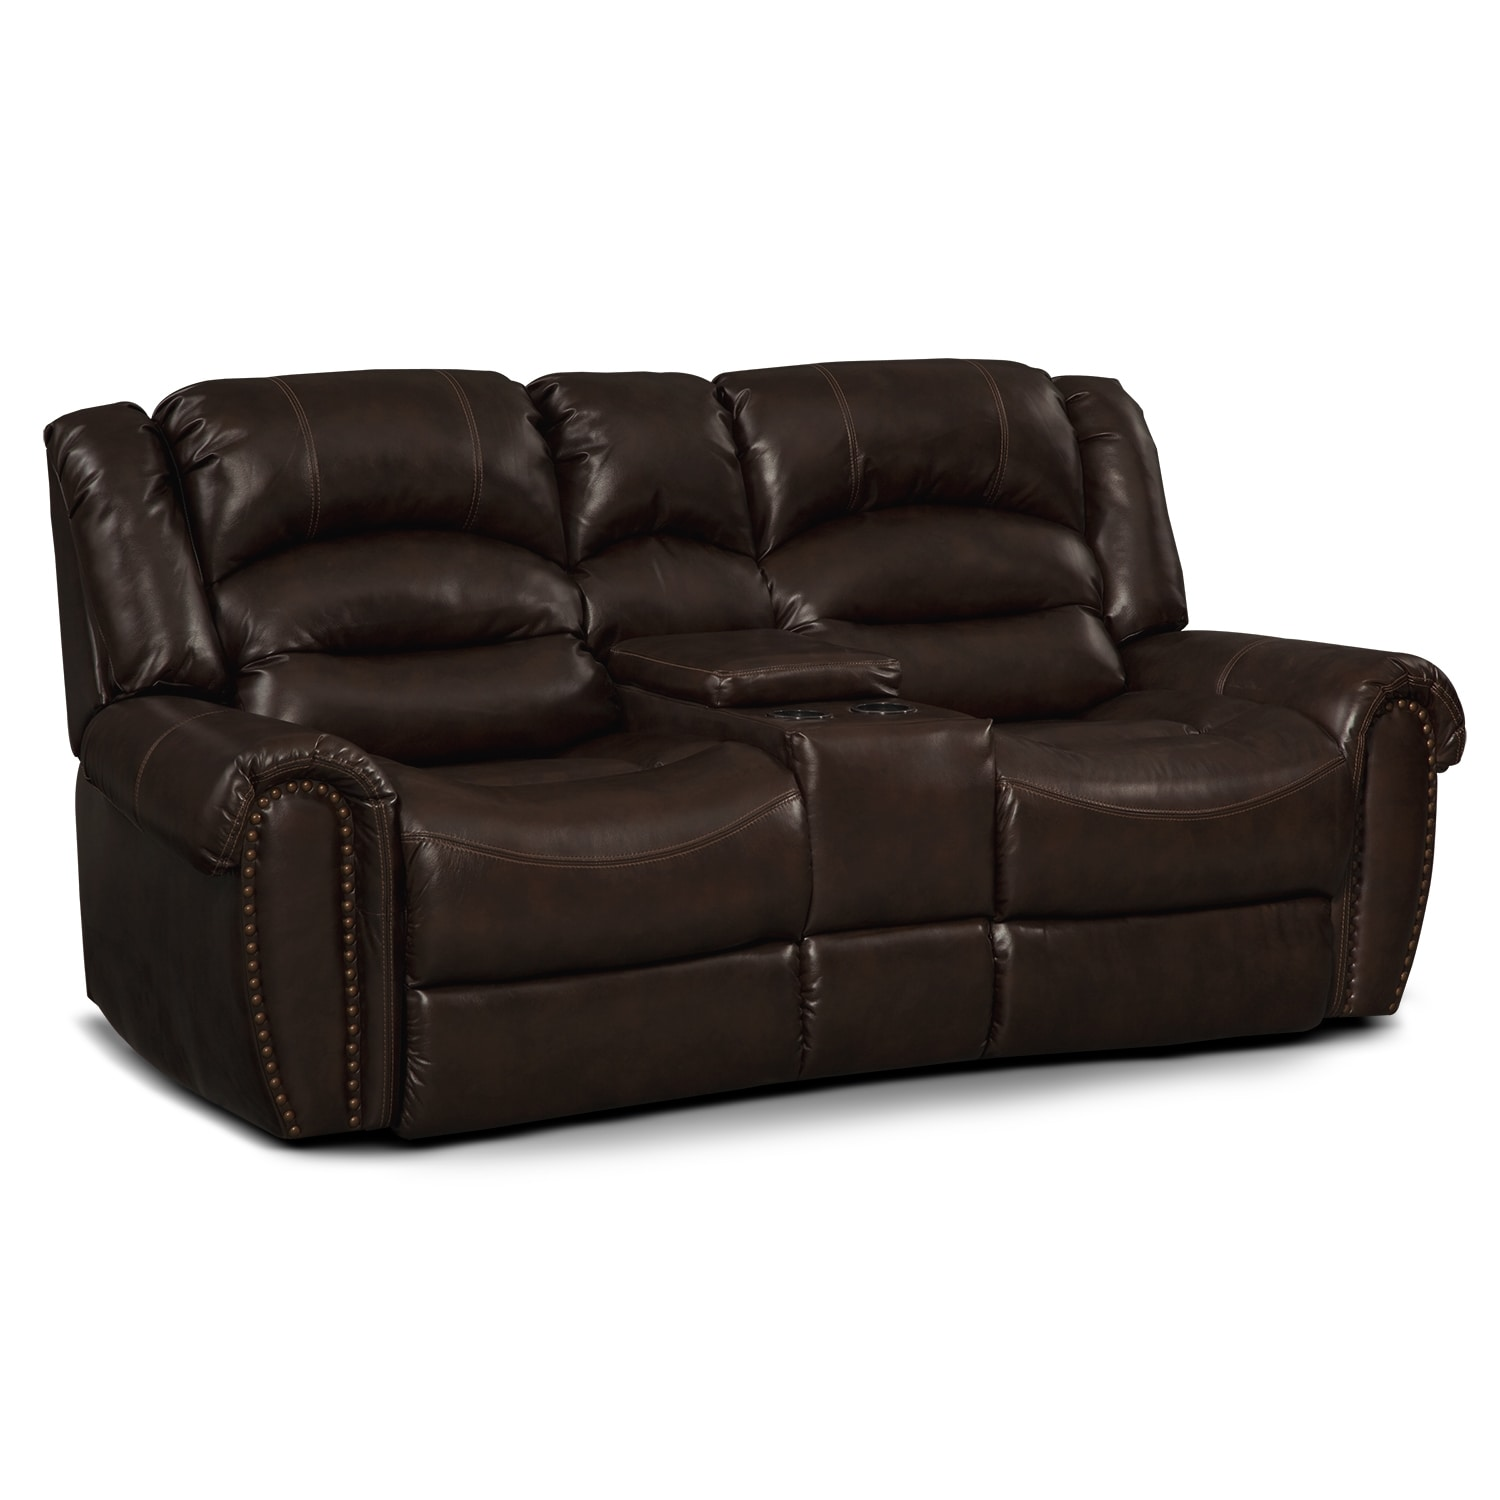 Galveston leather dual reclining loveseat value city furniture Leather loveseat recliners